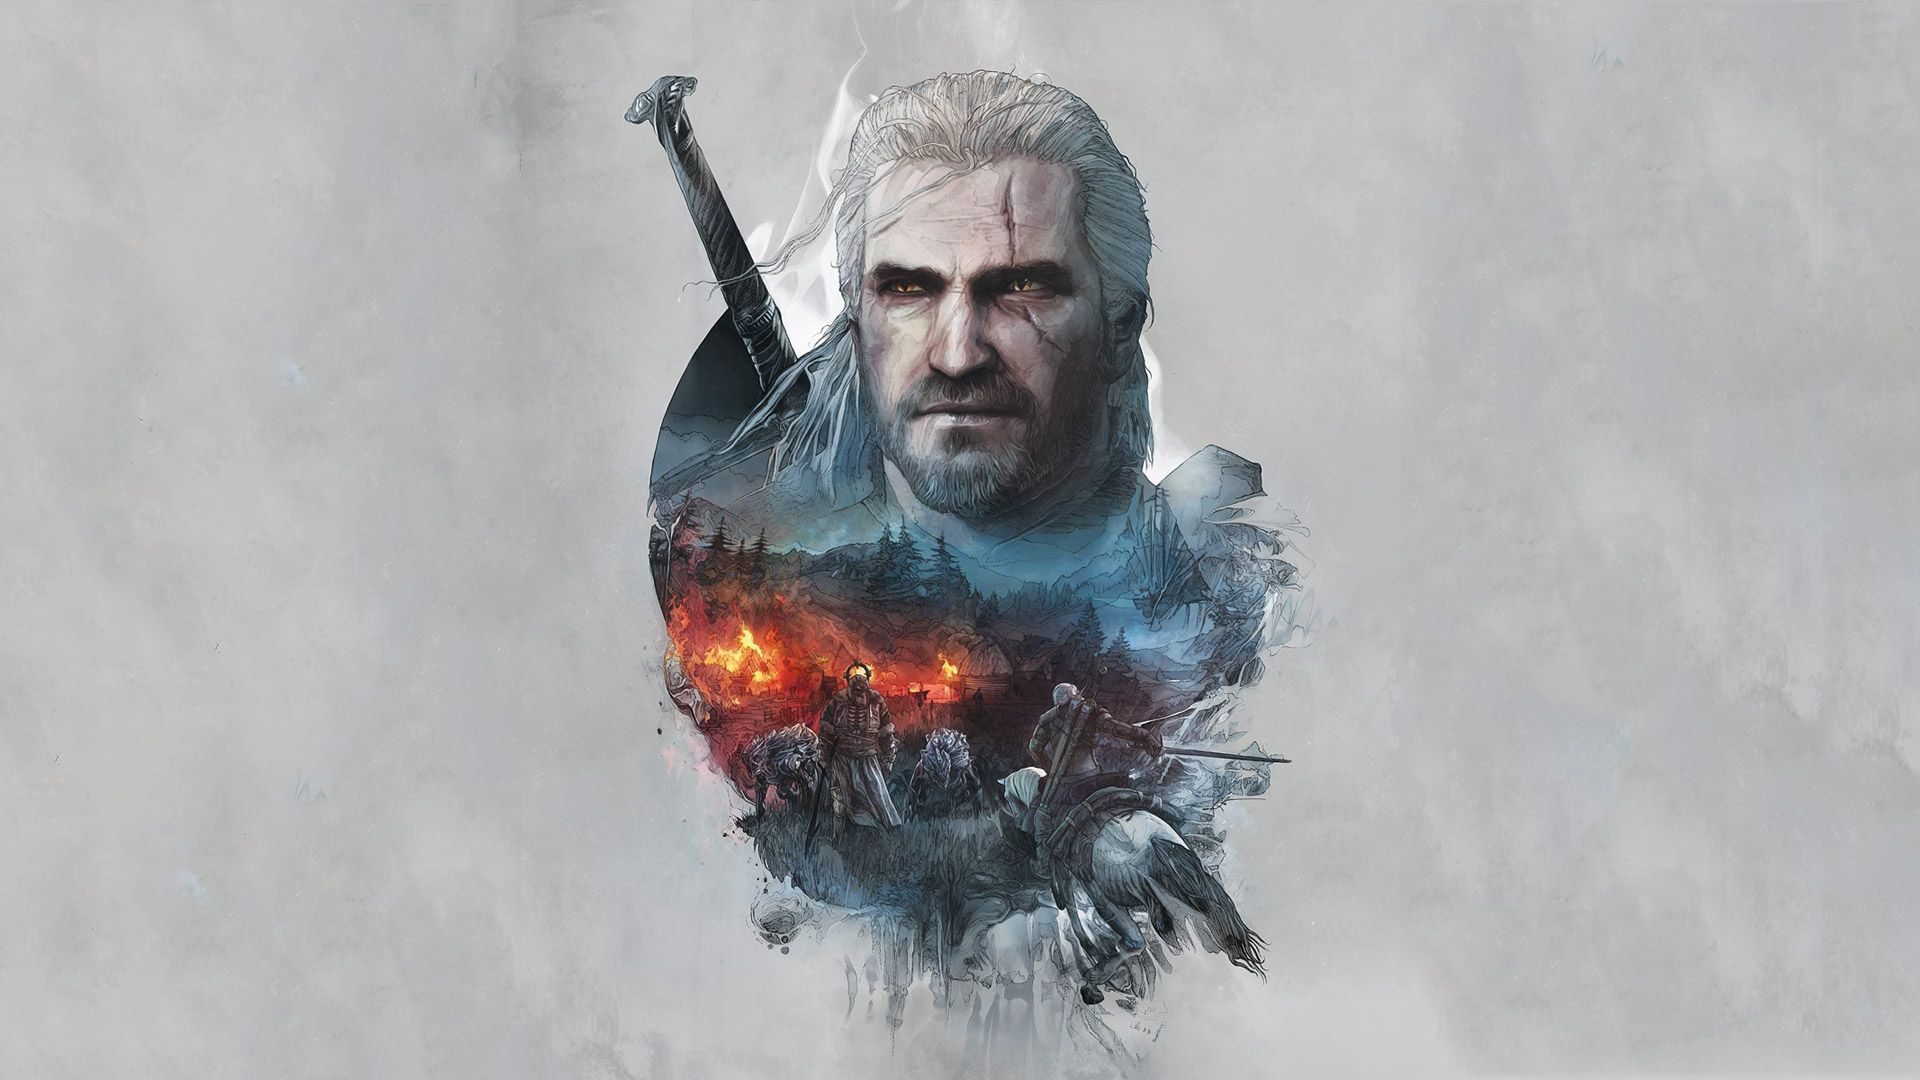 Free The Witcher 3 Wallpaper in 1920x1080 Witcher 3 Wild